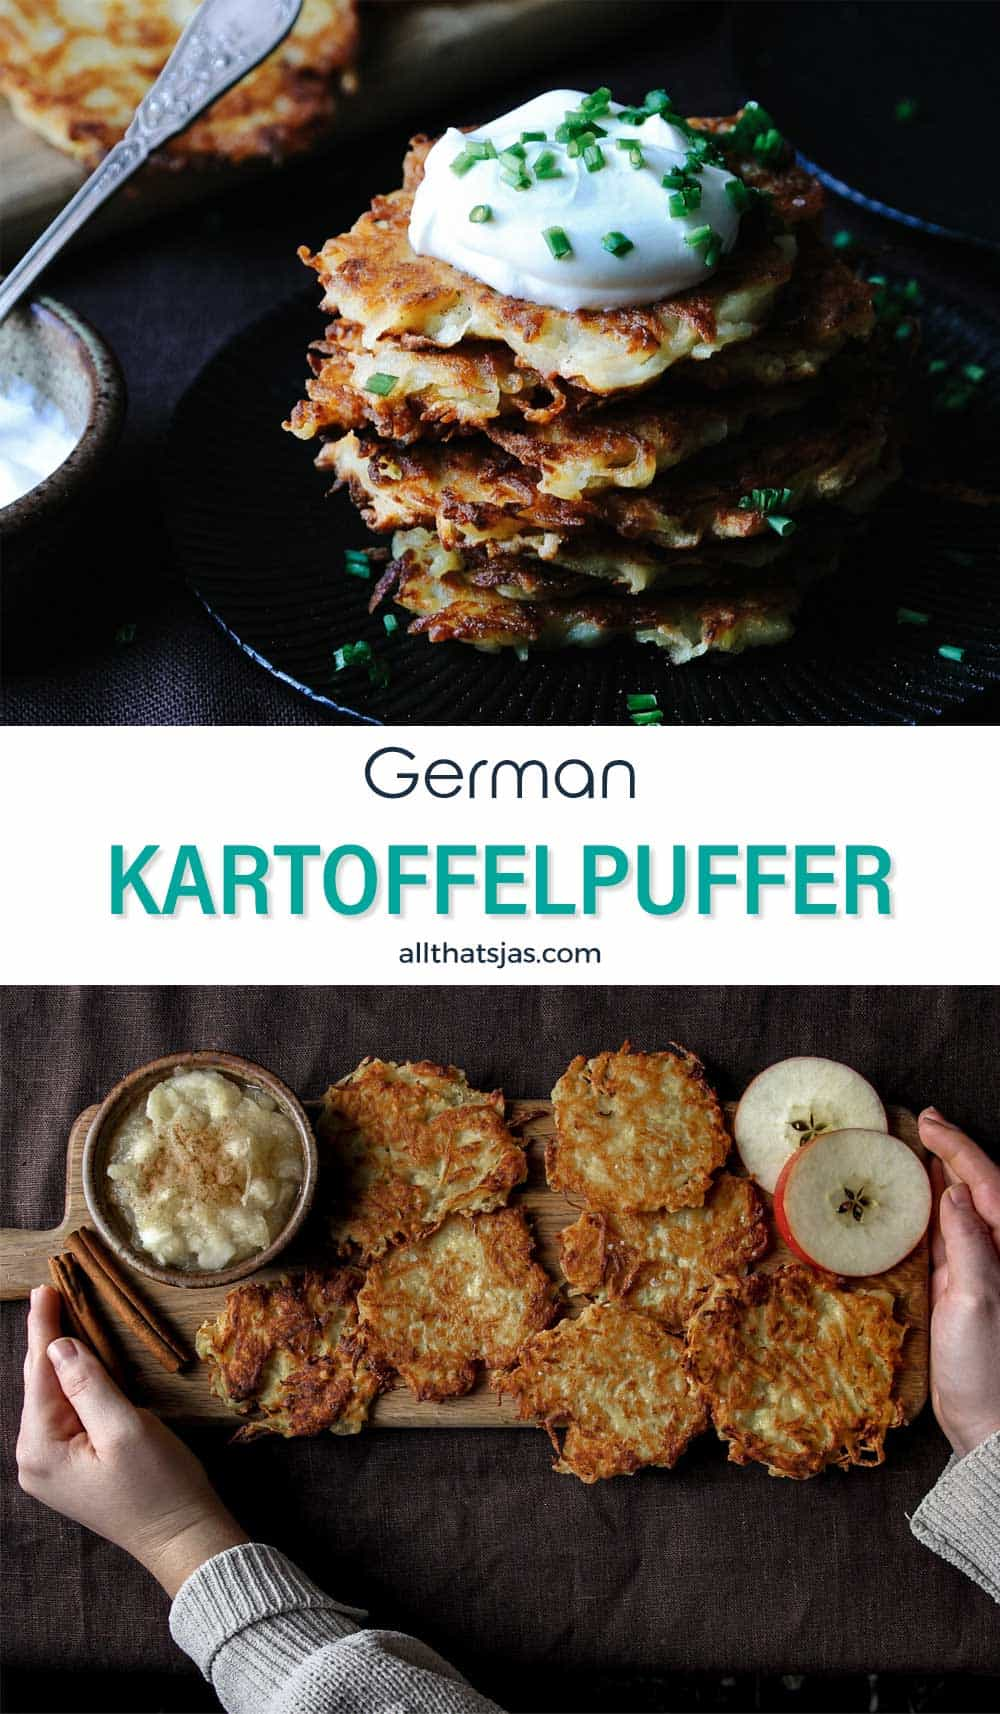 Two photo image of Kartoffelpuffer and text overlay in the middle.